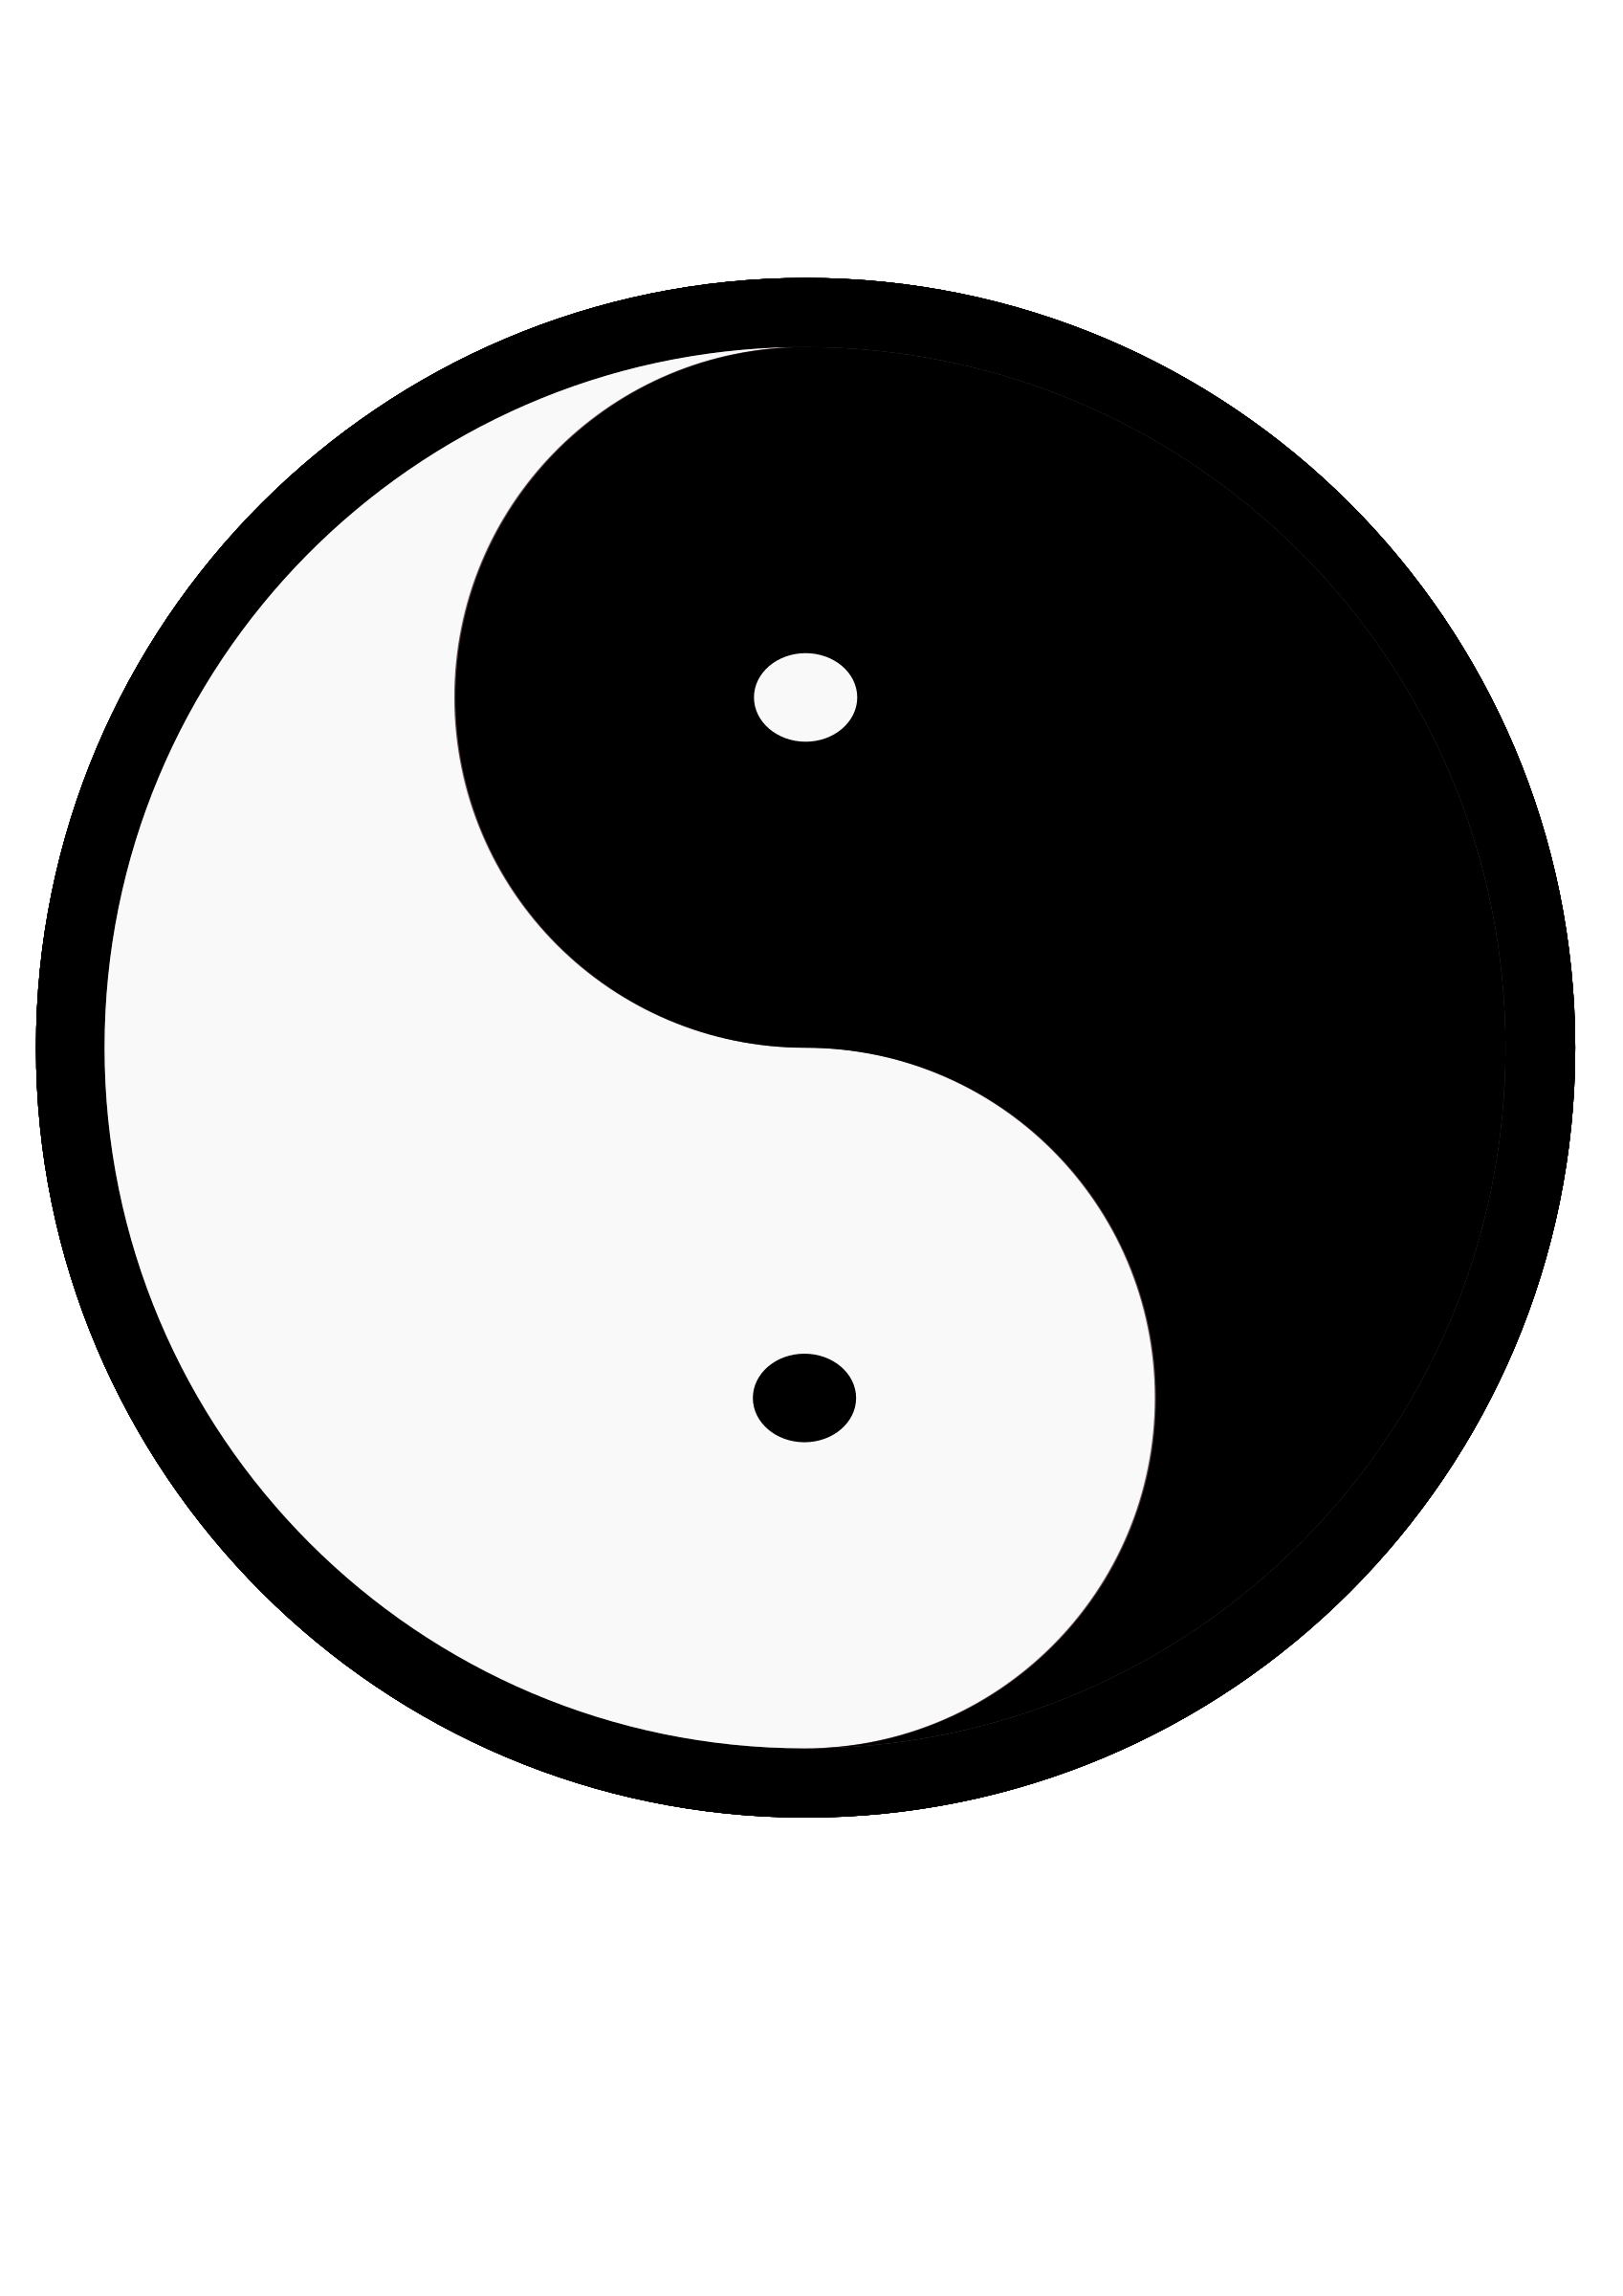 Yin-yang by Miguelvillegas24